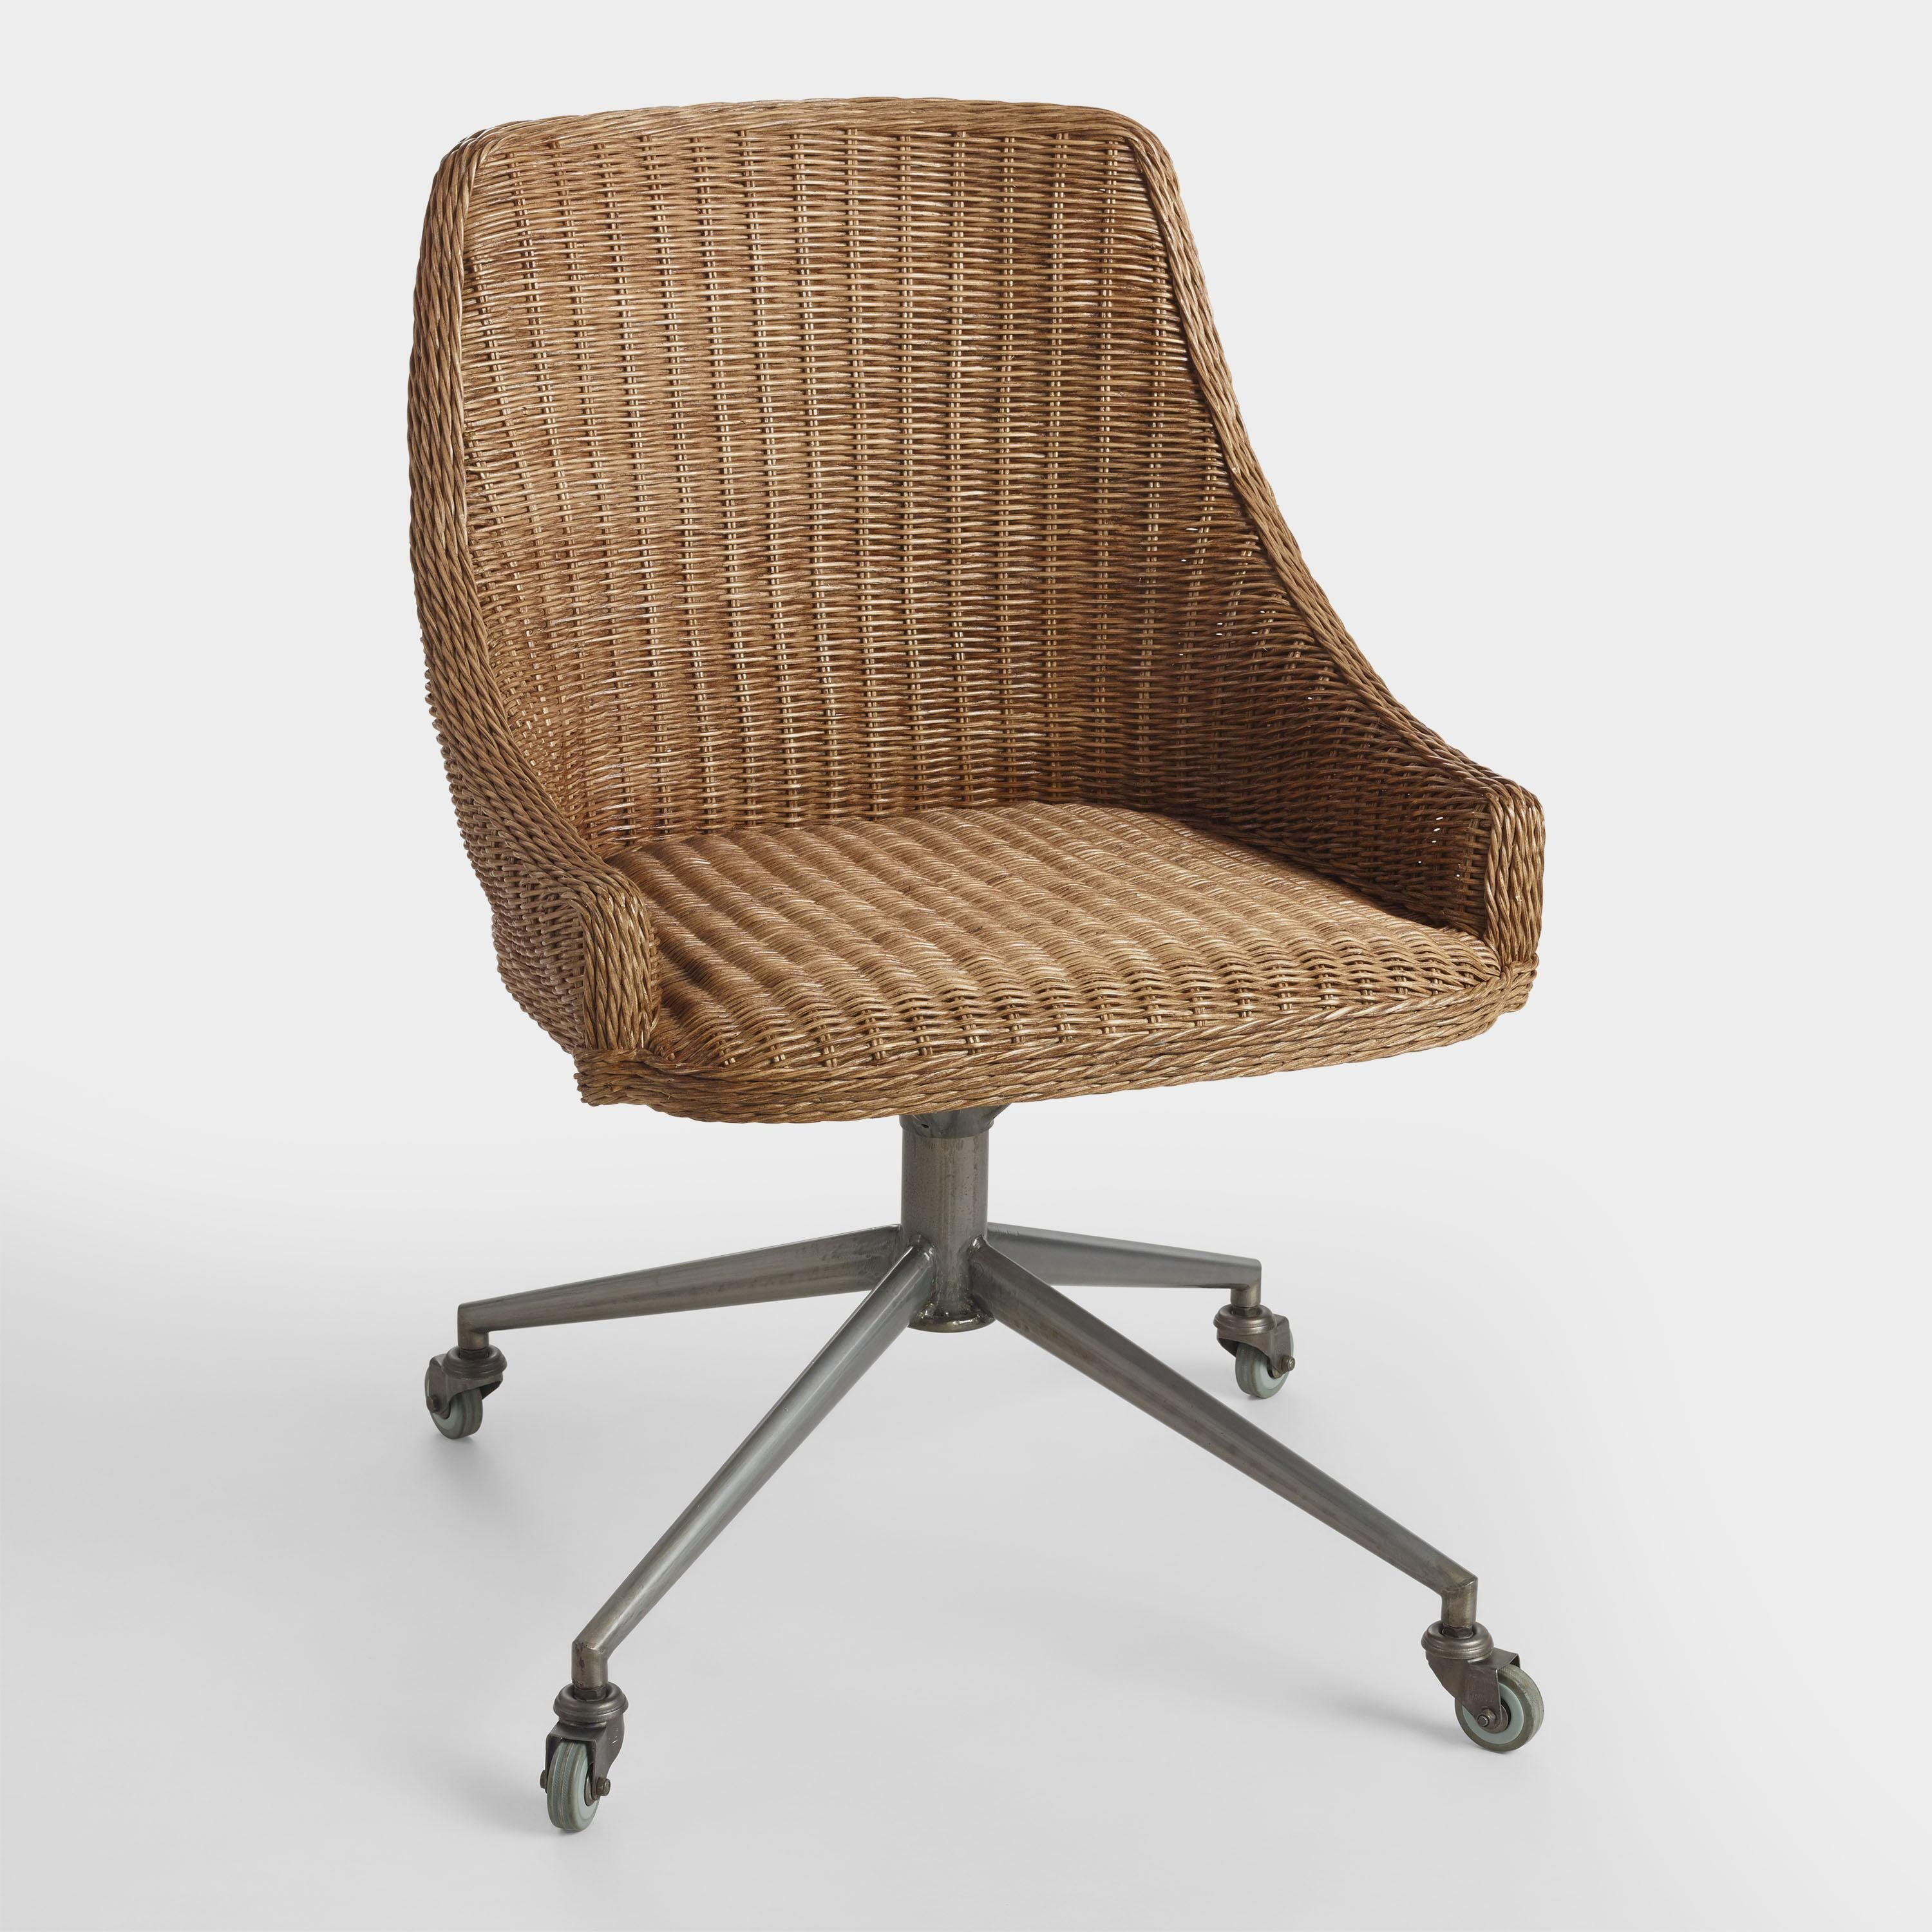 Honey Brown Wicker Tania Office Chair Office Chair Upholstered